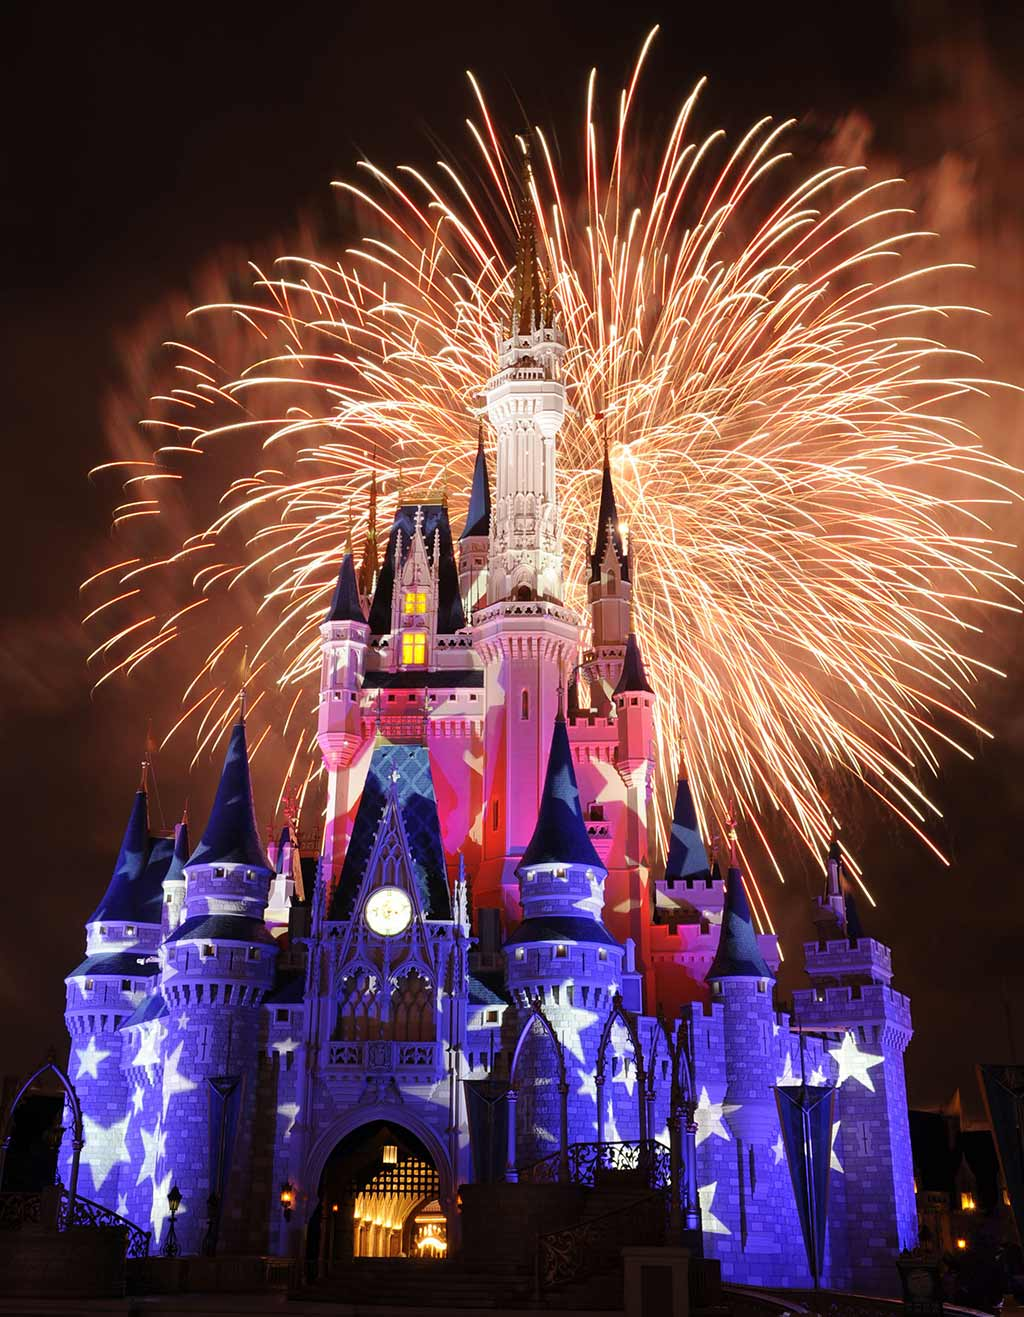 Cinderella Castle projection mapping and fireworks